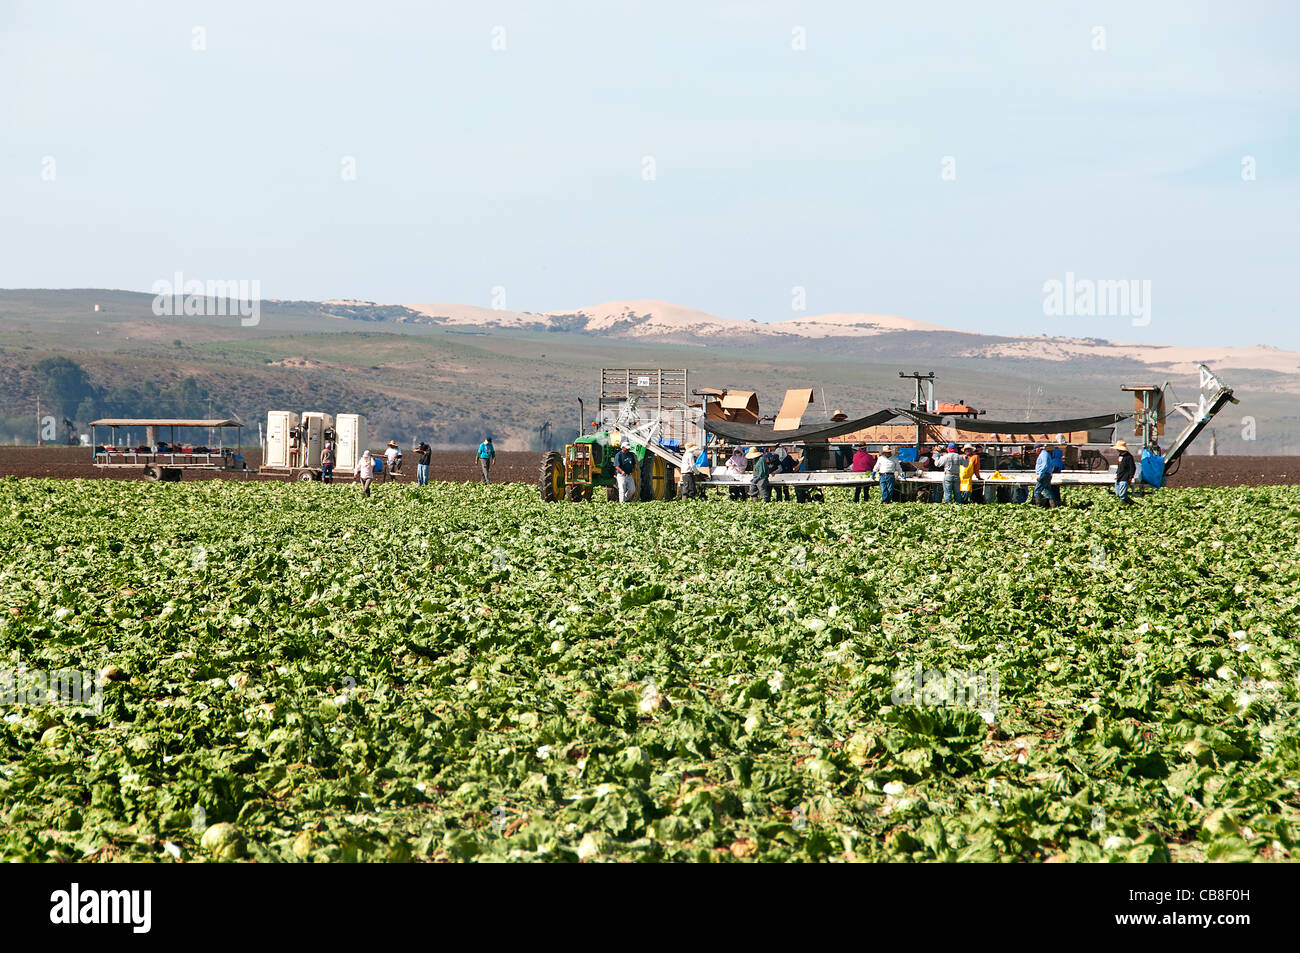 Santa Barbara County California Farm migrant work Workers Hispanic Mexican Mexico Harvest Farming - Stock Image